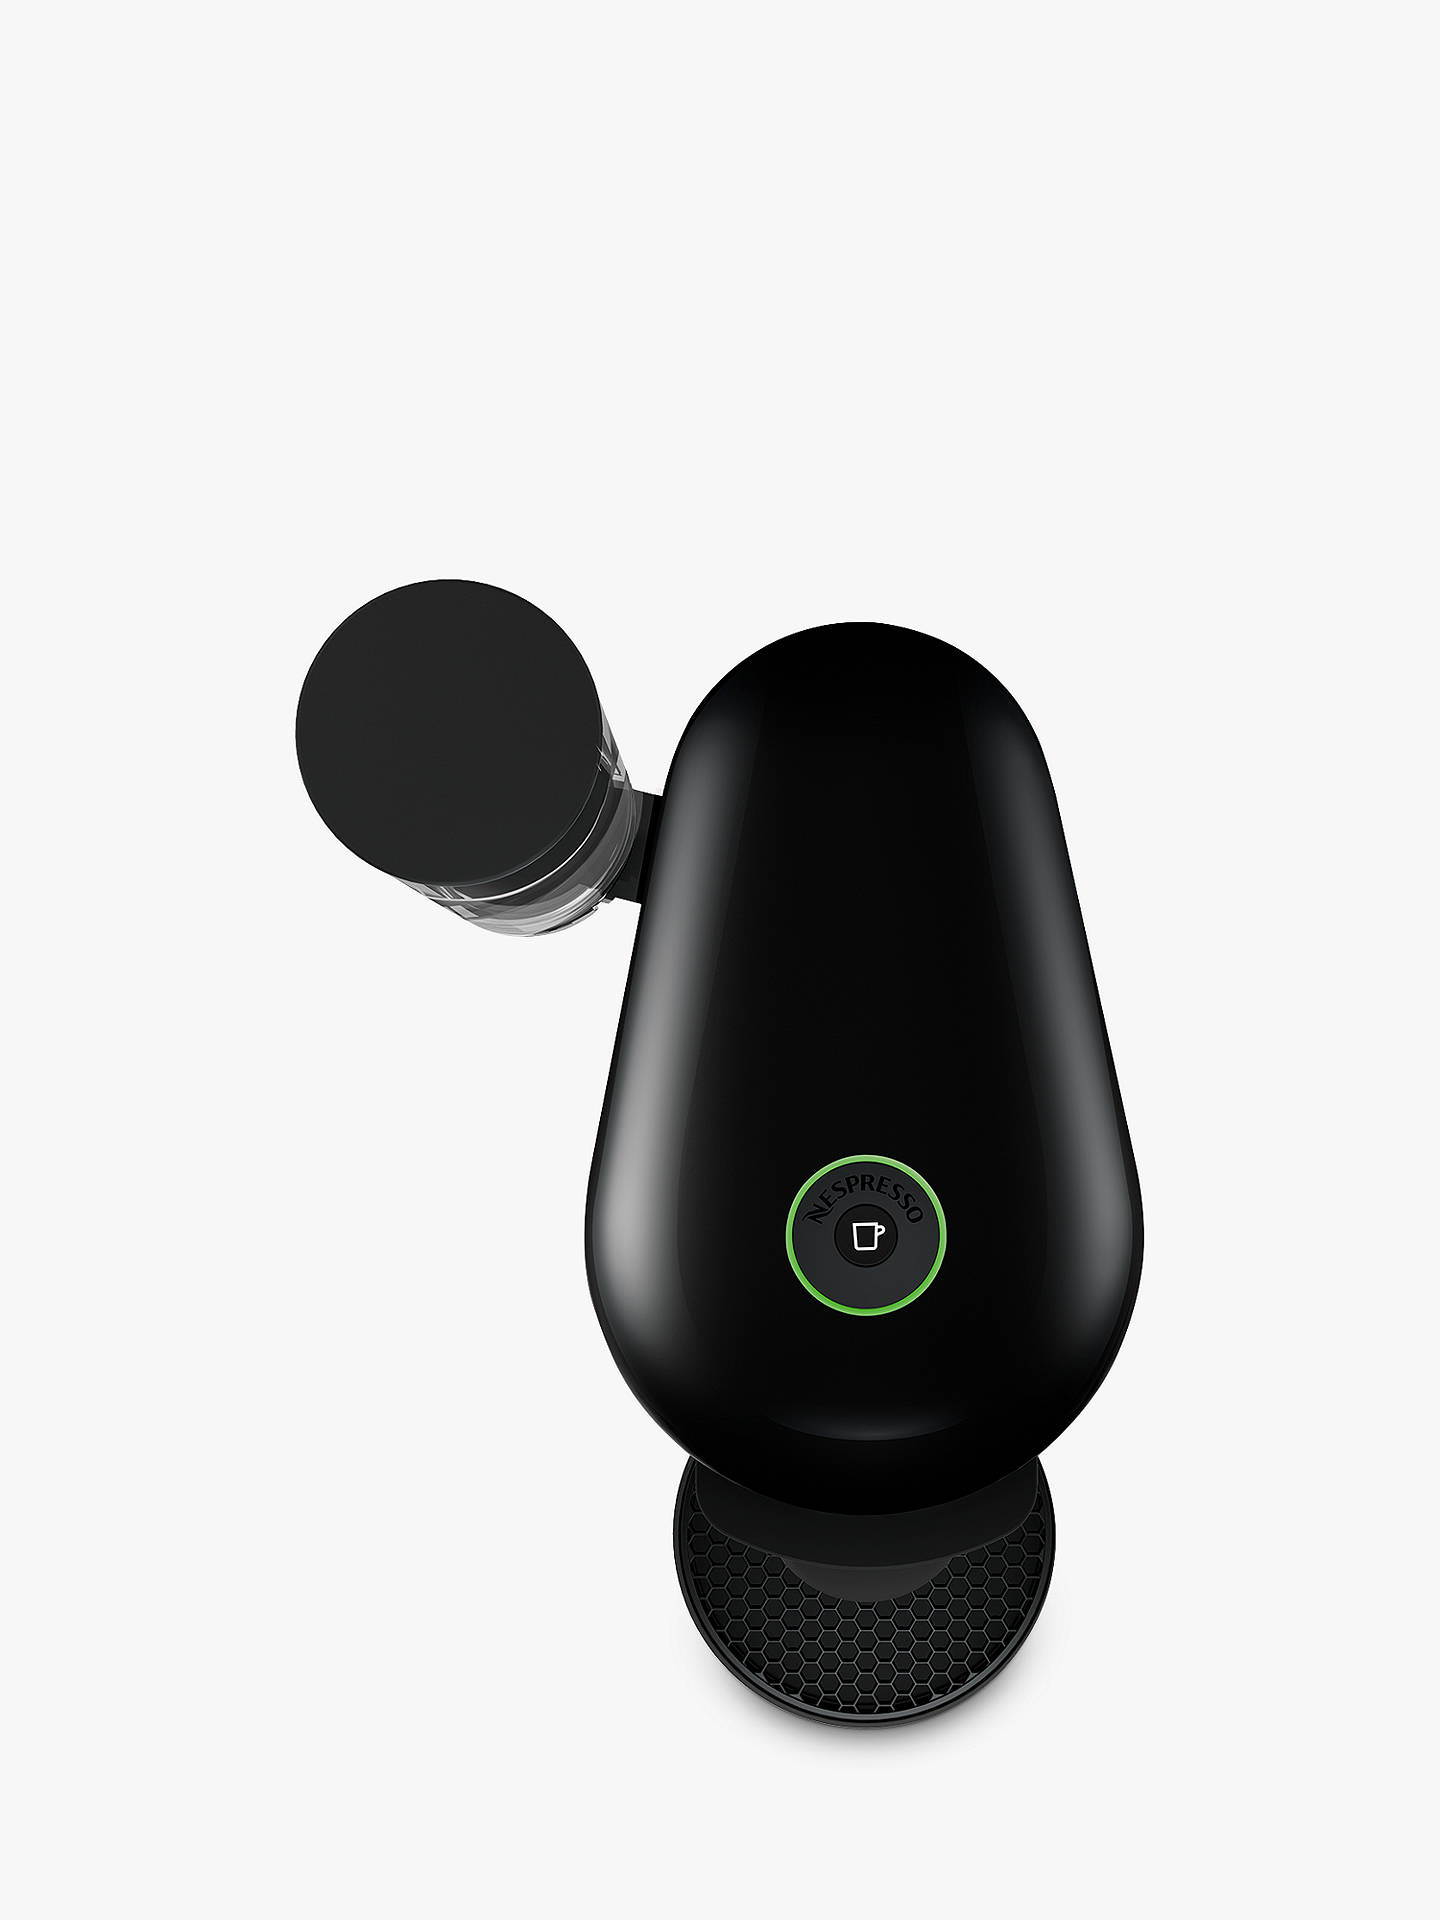 Buy Nespresso Vertuo Plus XN903840 Coffee Machine by Krups with Pods Online at johnlewis.com